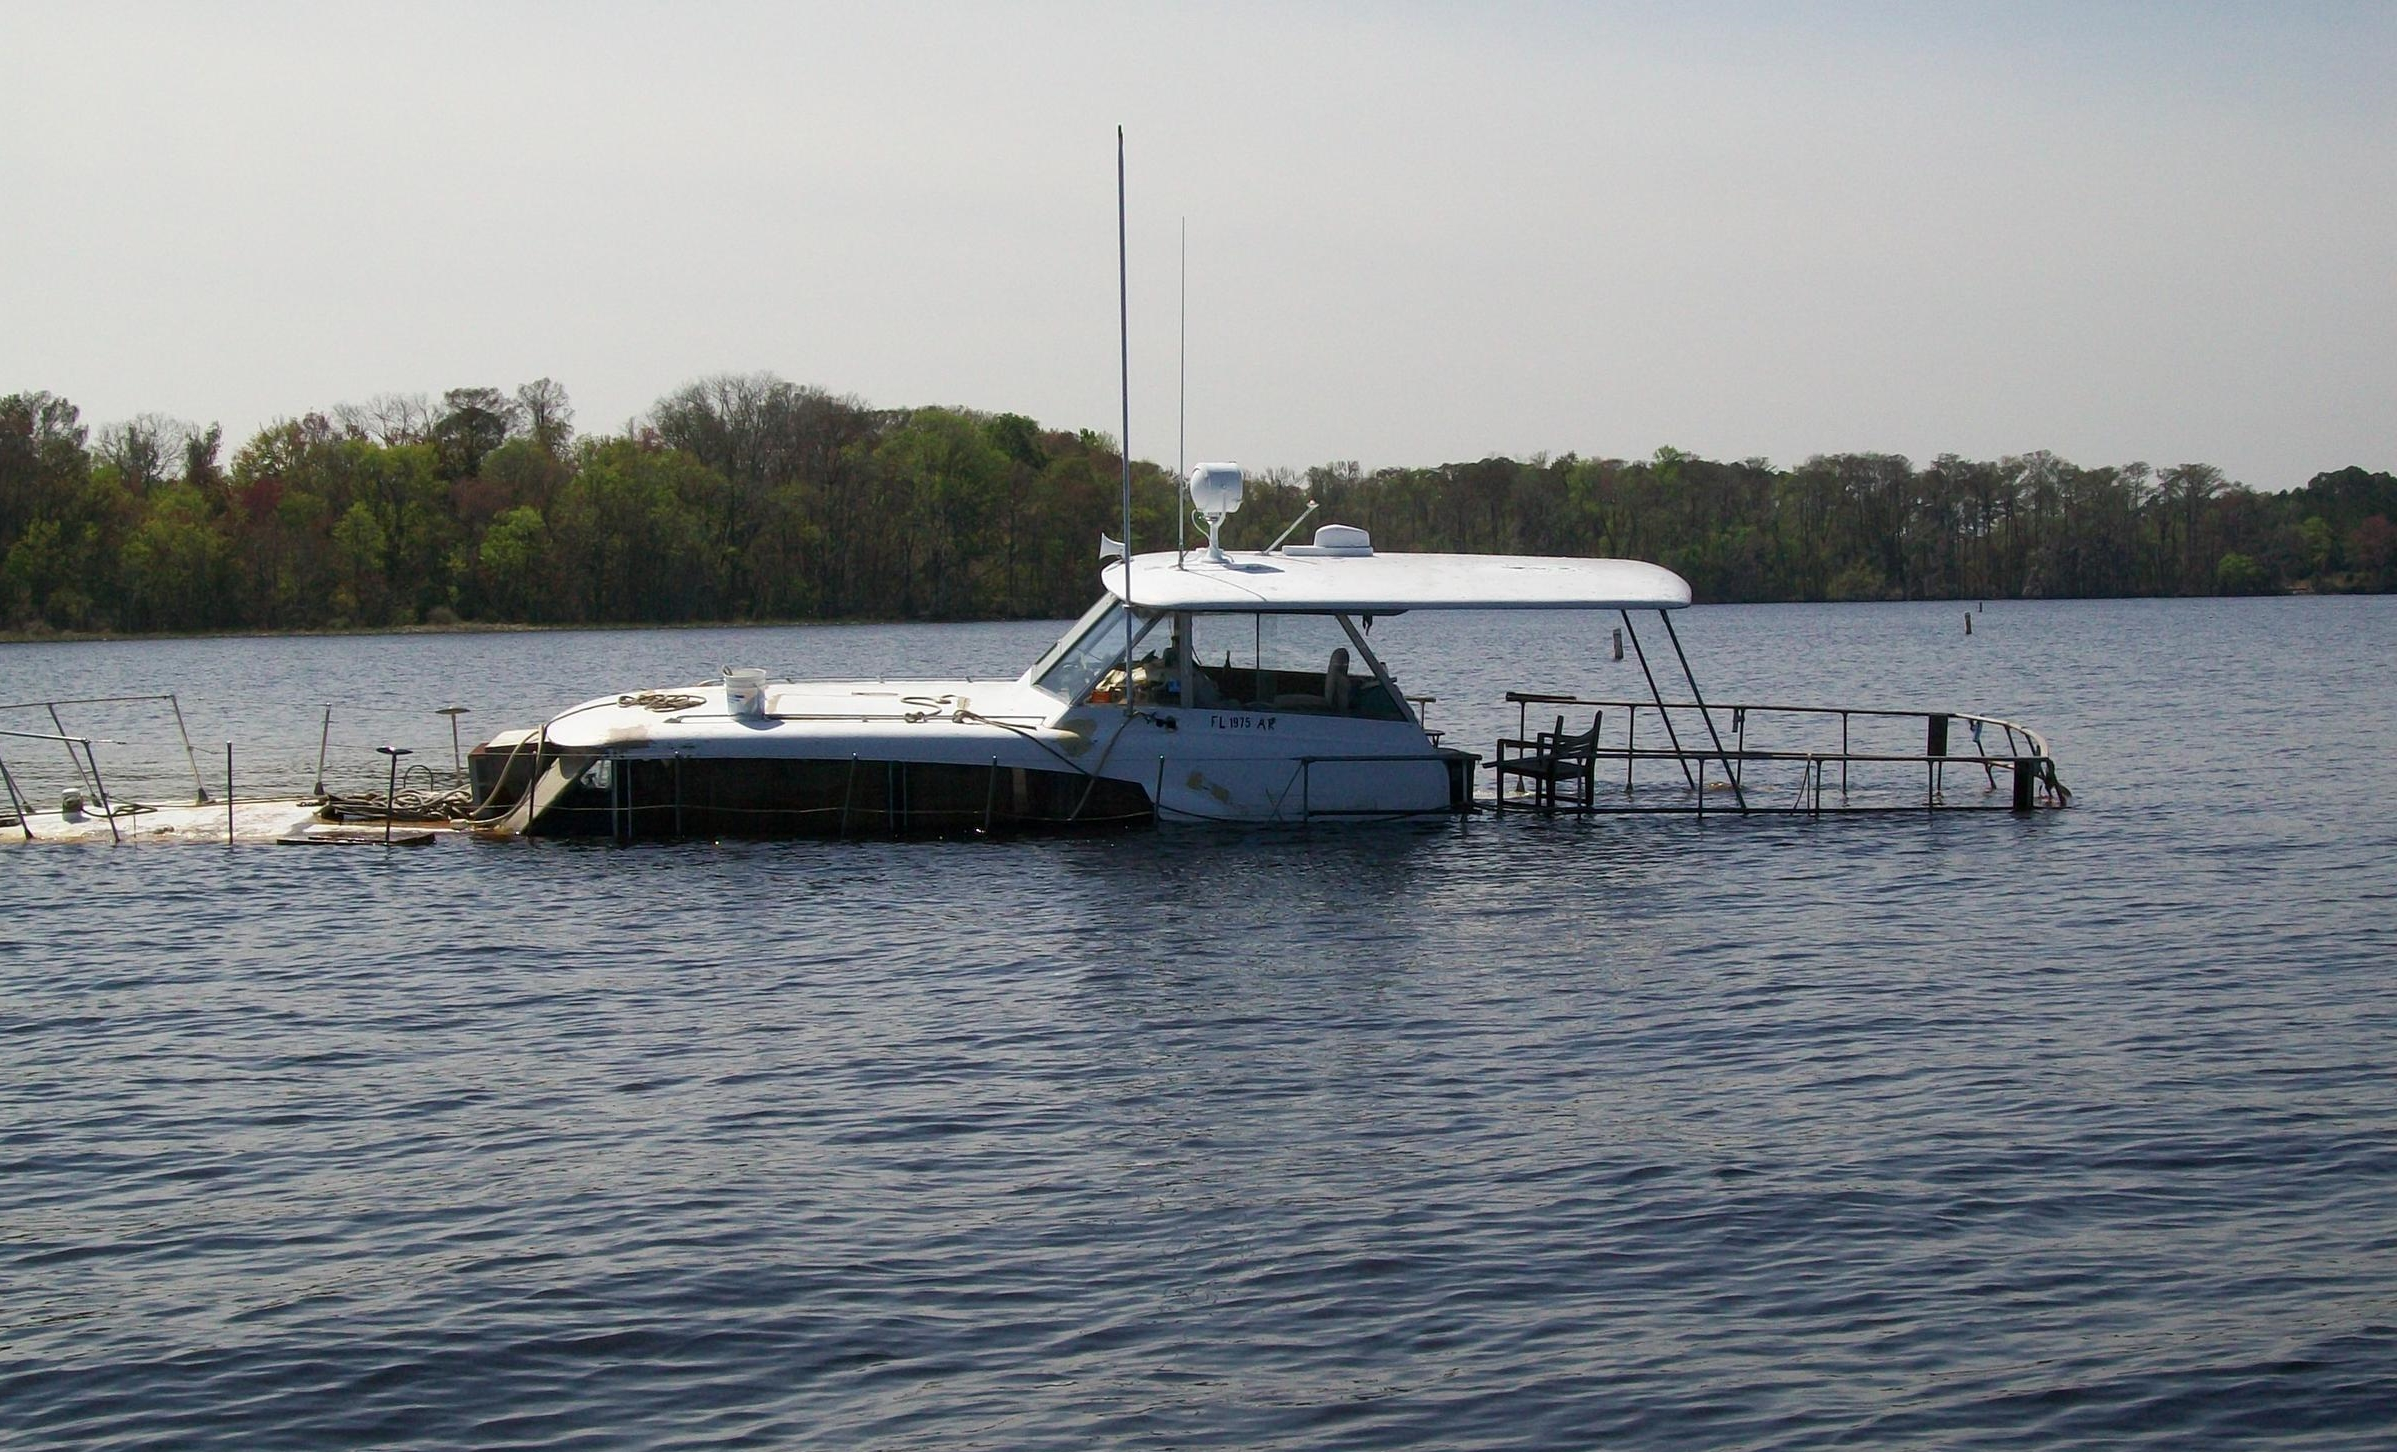 One of the derelict boats set to be pulled from the St. Johns River in Clay County Credit: Florida Fish and Wildlife Commission